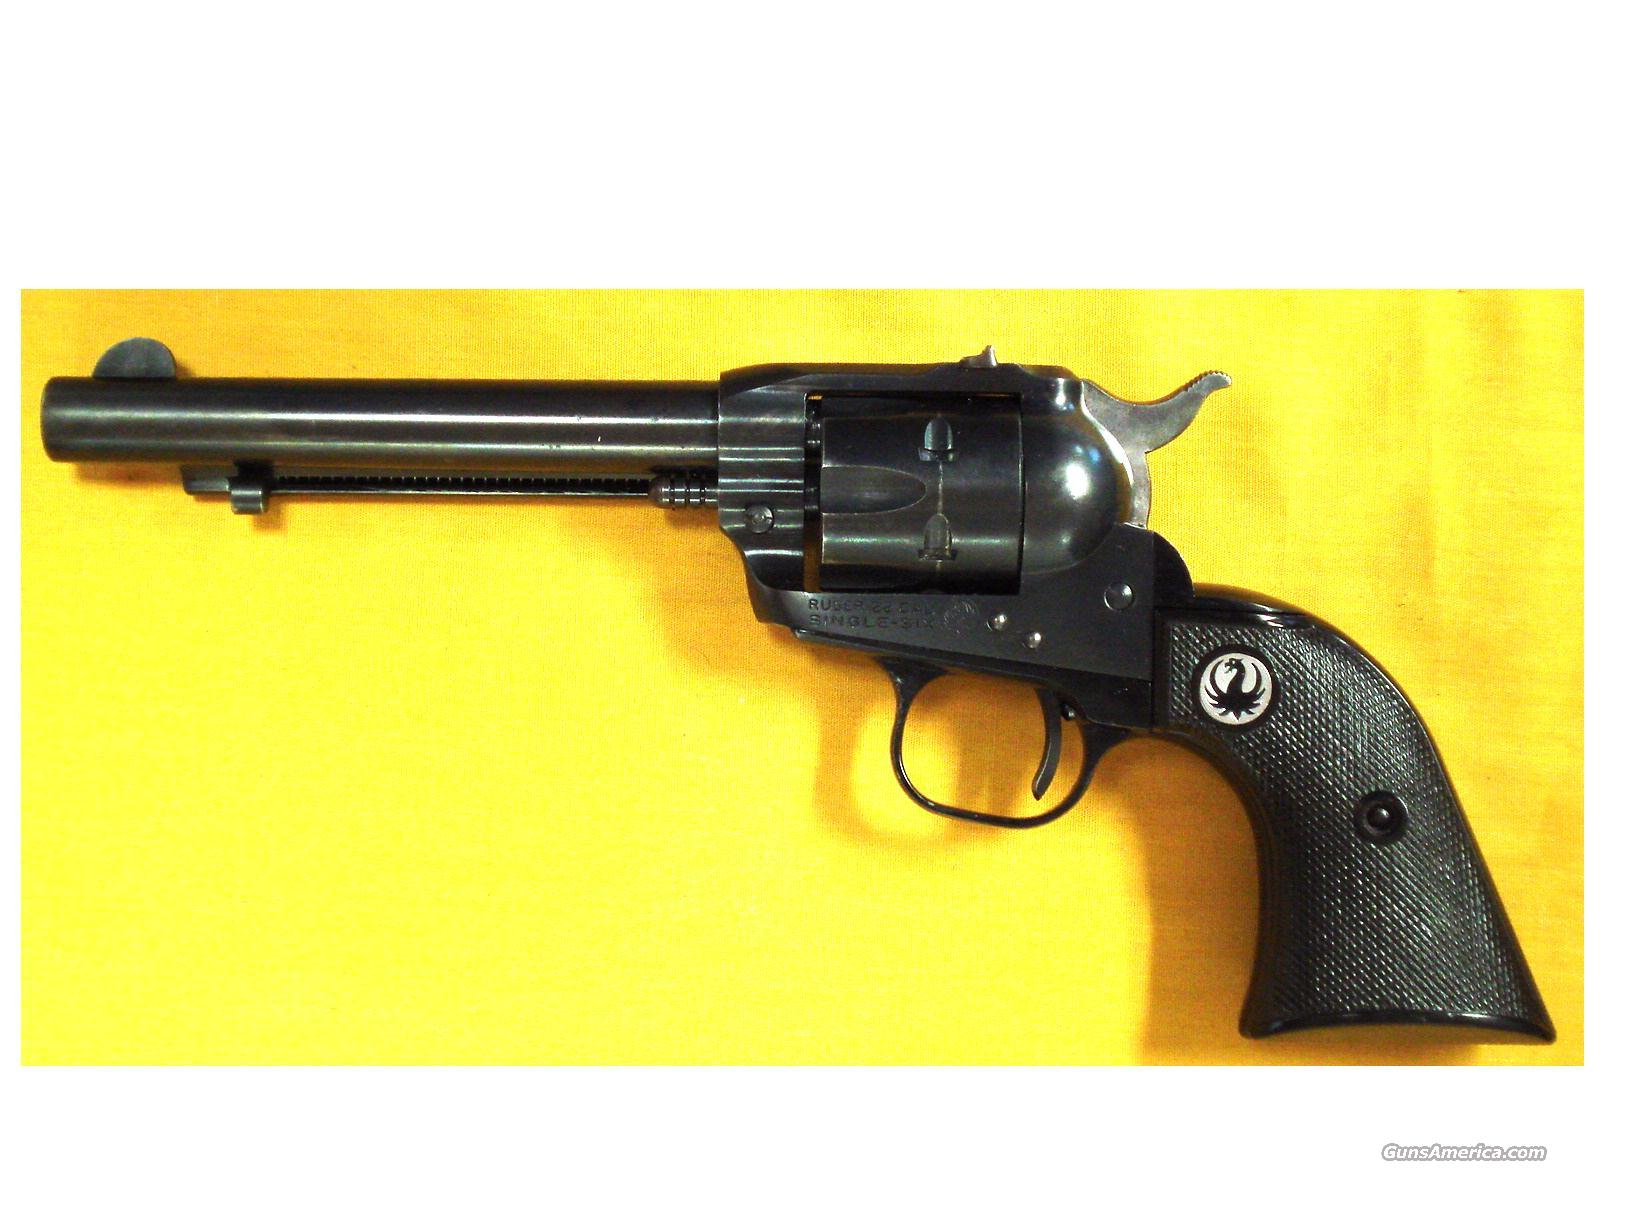 "RUGER SINGLE SIX .22LR 5 1/2"" BBL  Guns > Pistols > Ruger Single Action Revolvers > Single Six Type"